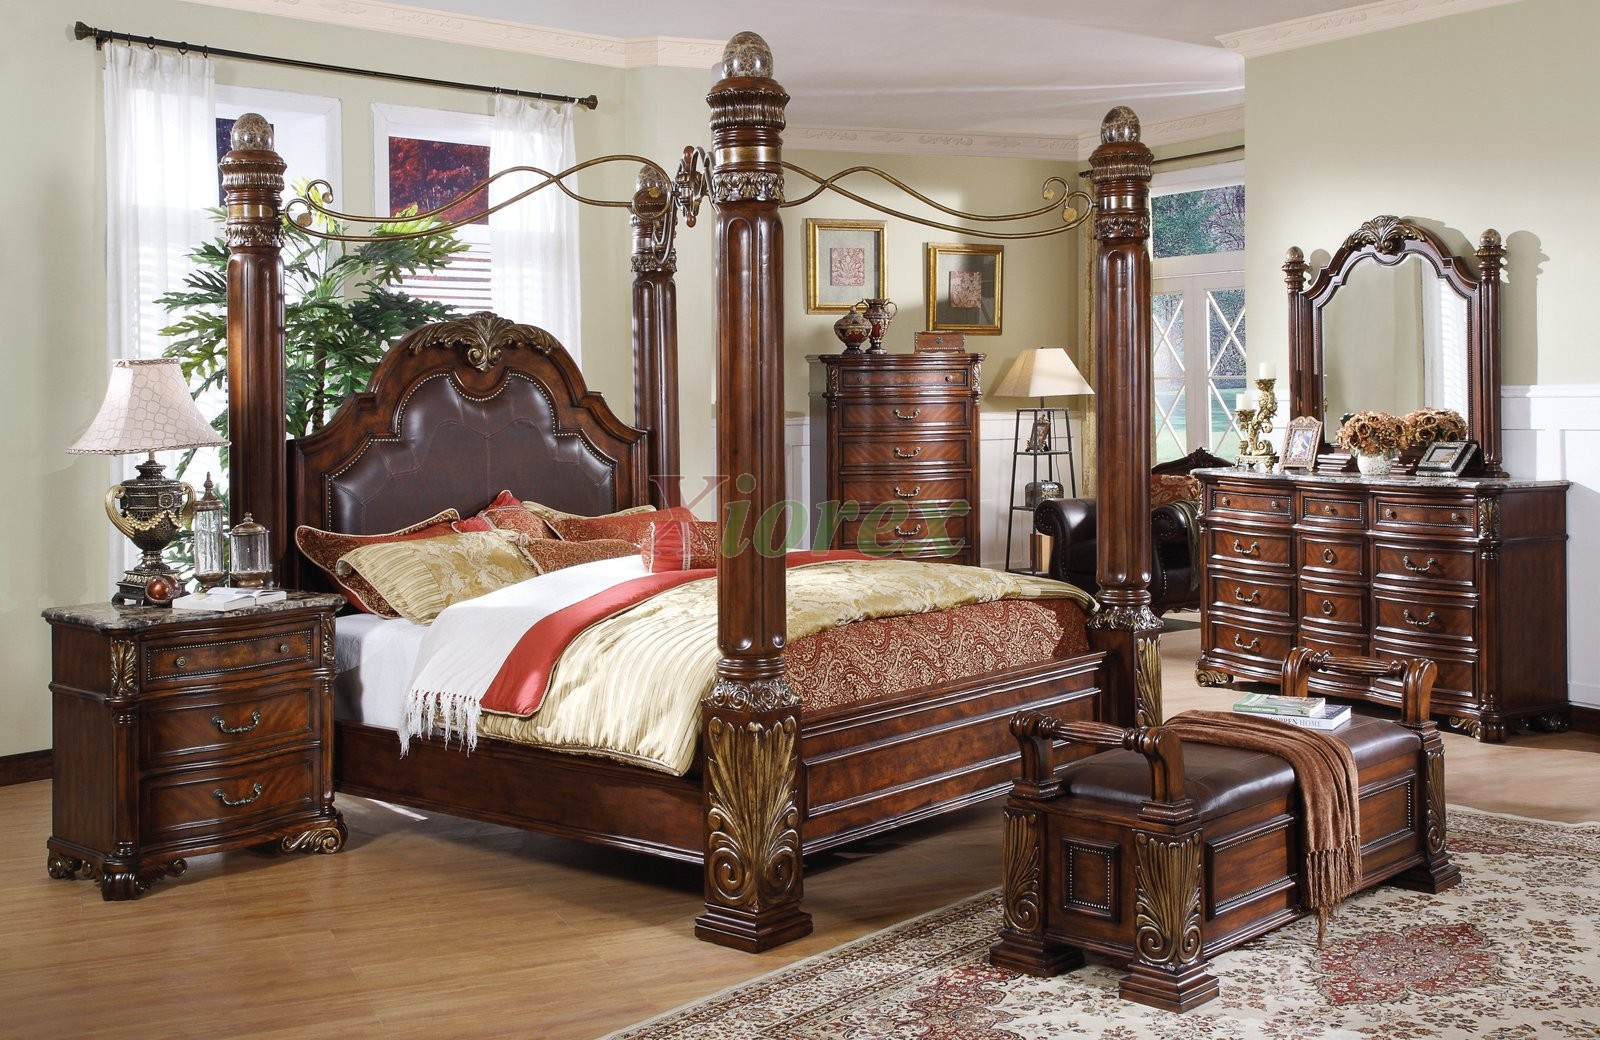 Awesome Poster Bedroom Set W Metal Canopy U0026 Leather Headboard Queen And King Beds  ...